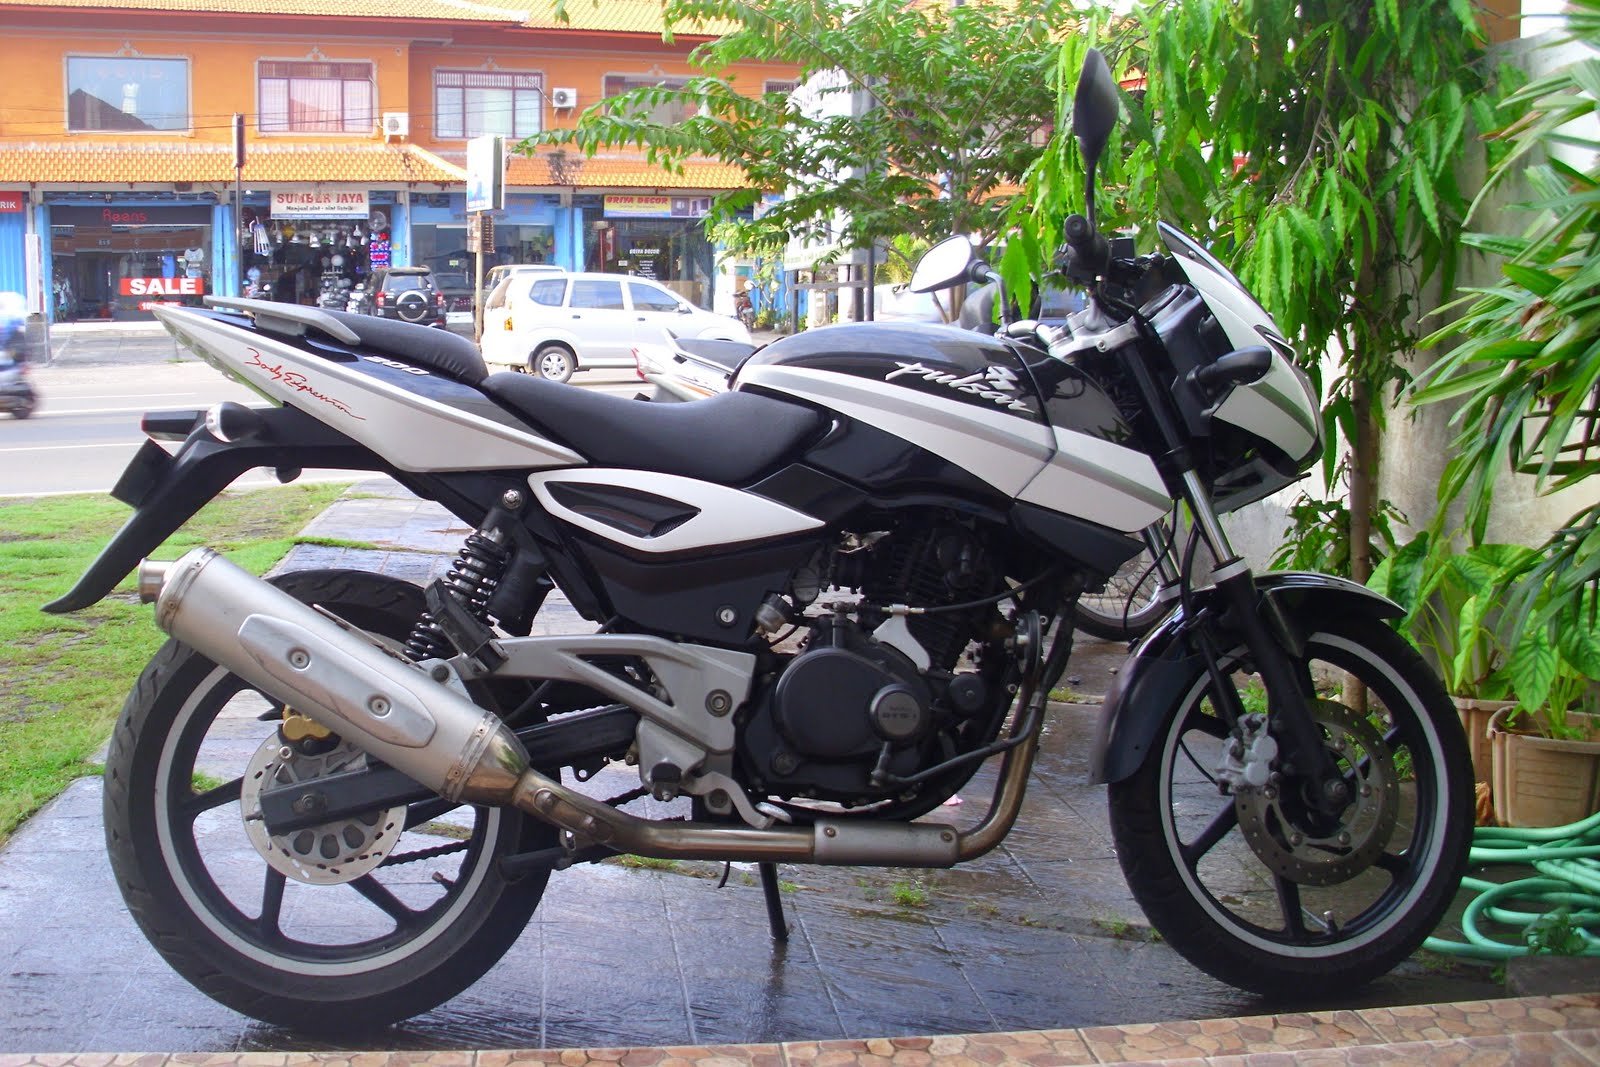 Bajaj pulsar 200 cc sticker modification